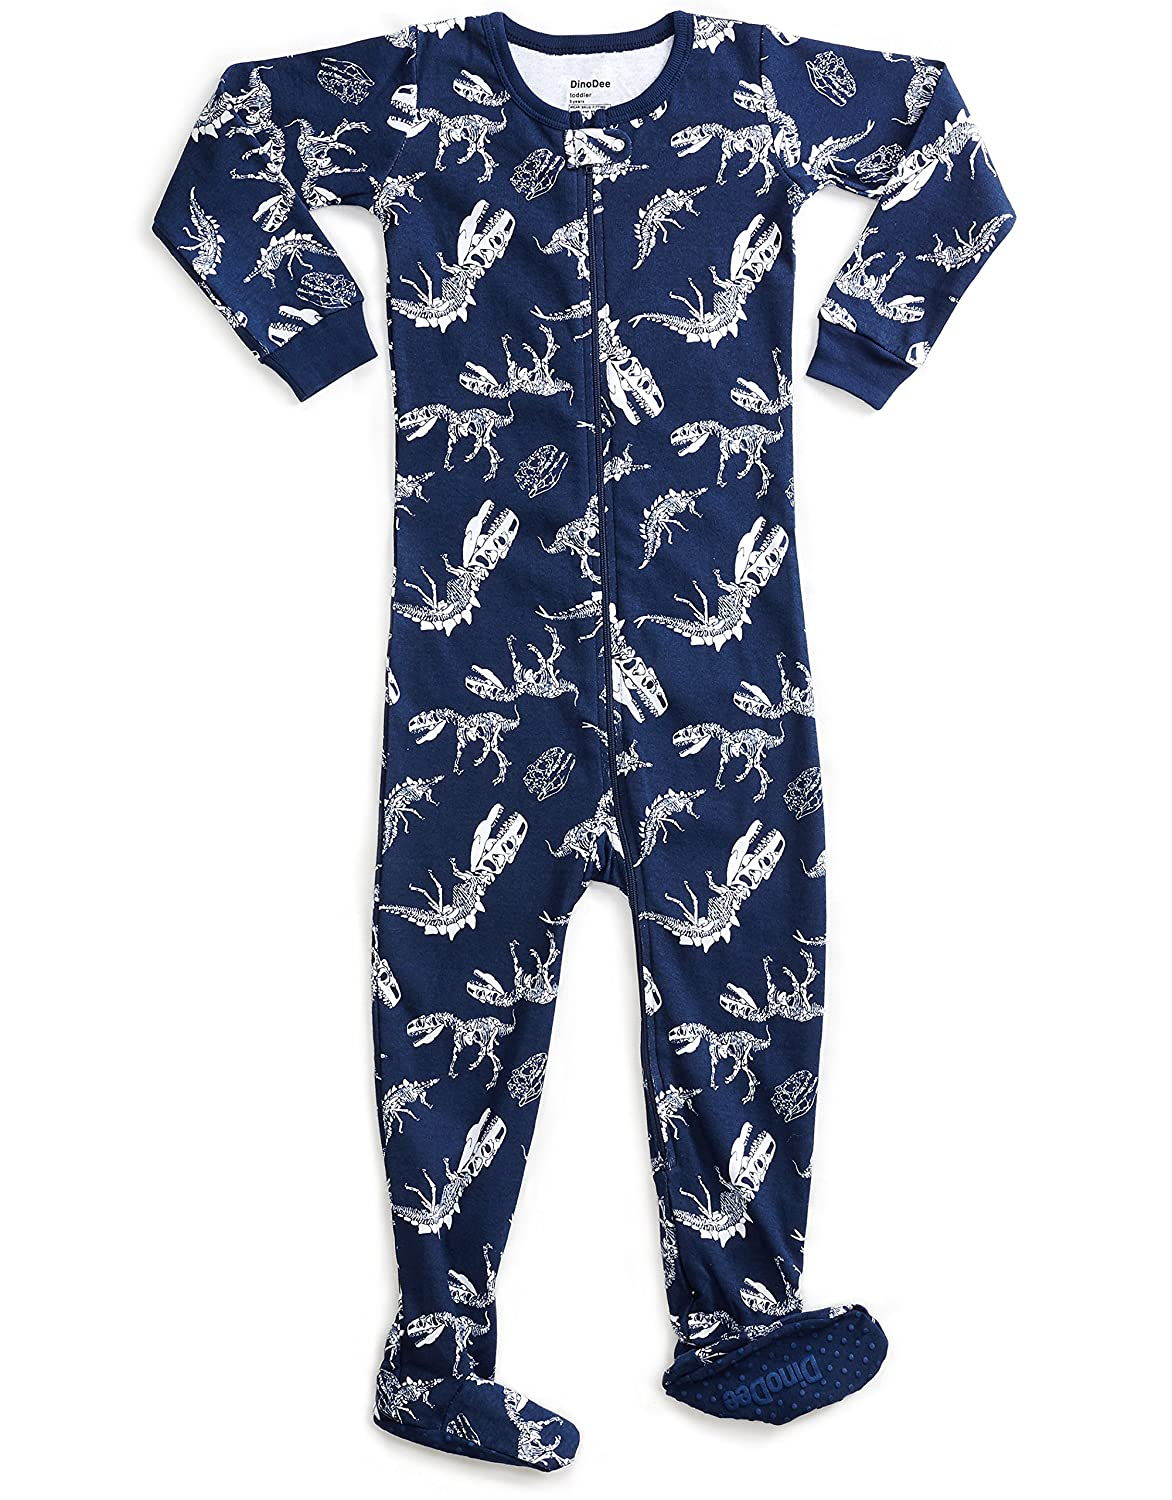 83158e91f7f6 DinoDee Baby Boys Girls Footed Pajamas Sleeper 100% Cotton Kids Pjs ...